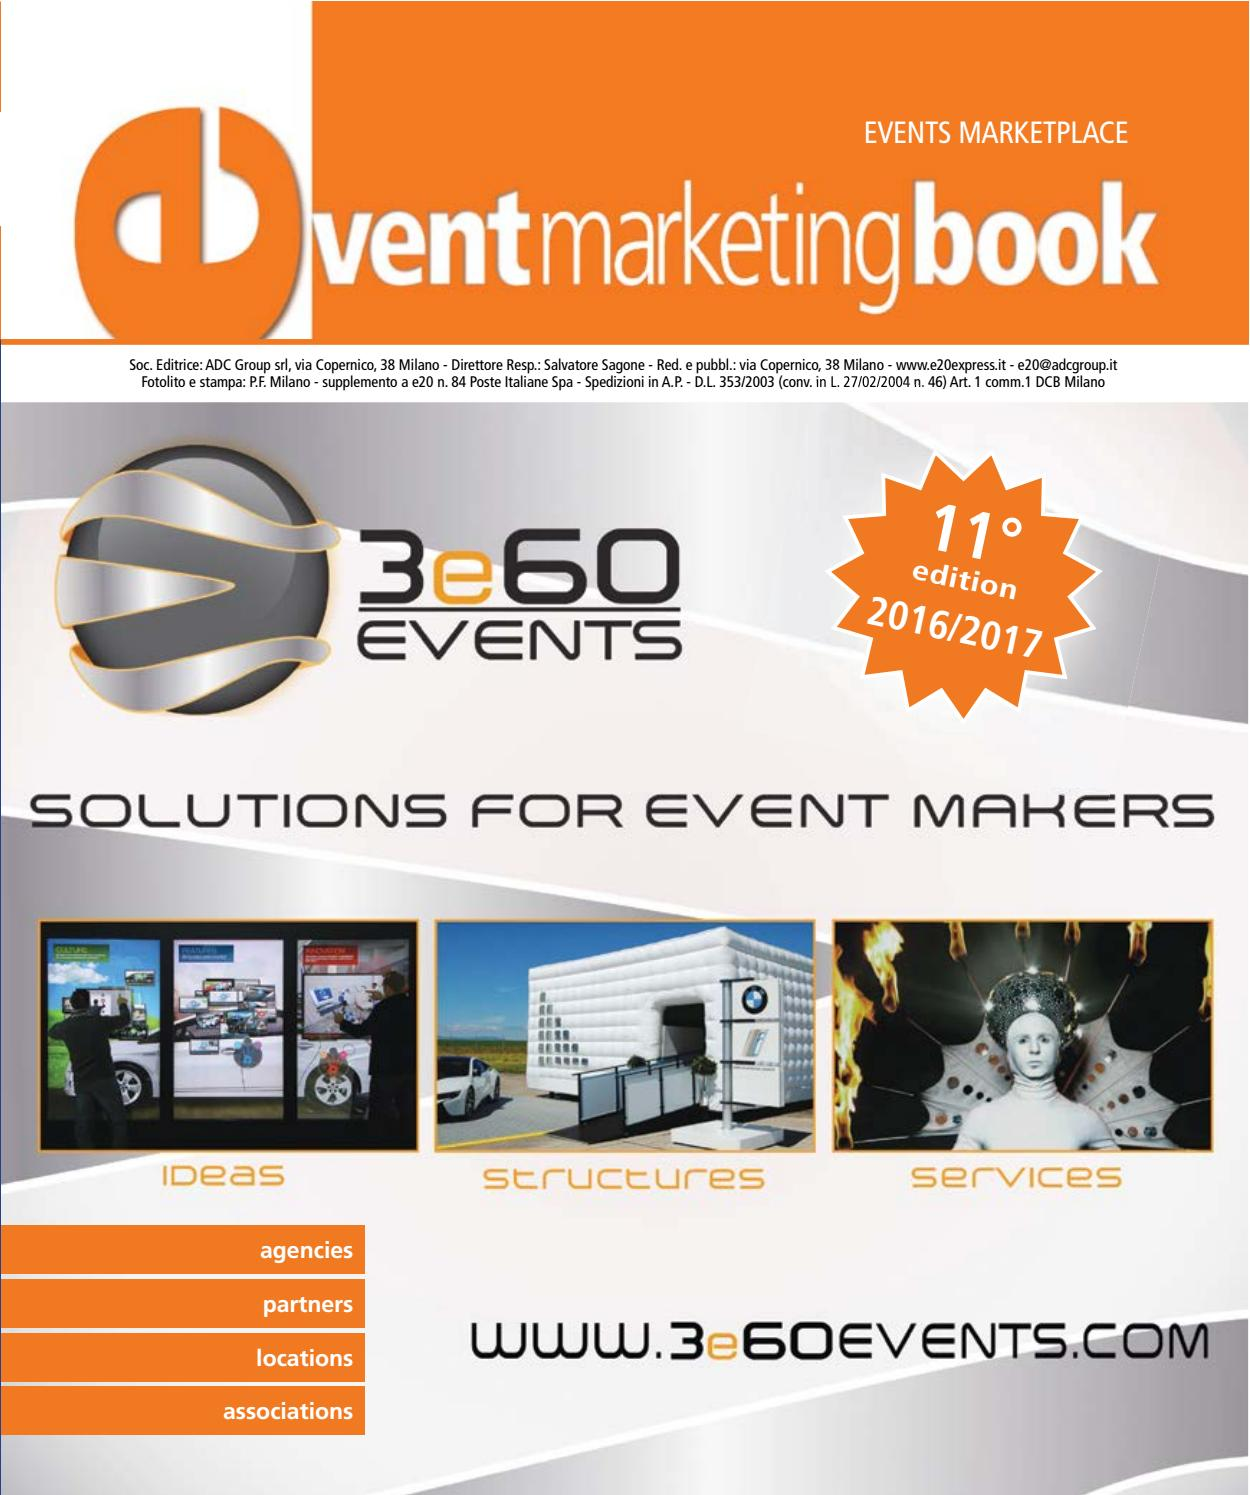 Event Marketing Book 2016 by ADC Group - issuu 4a1847559d8